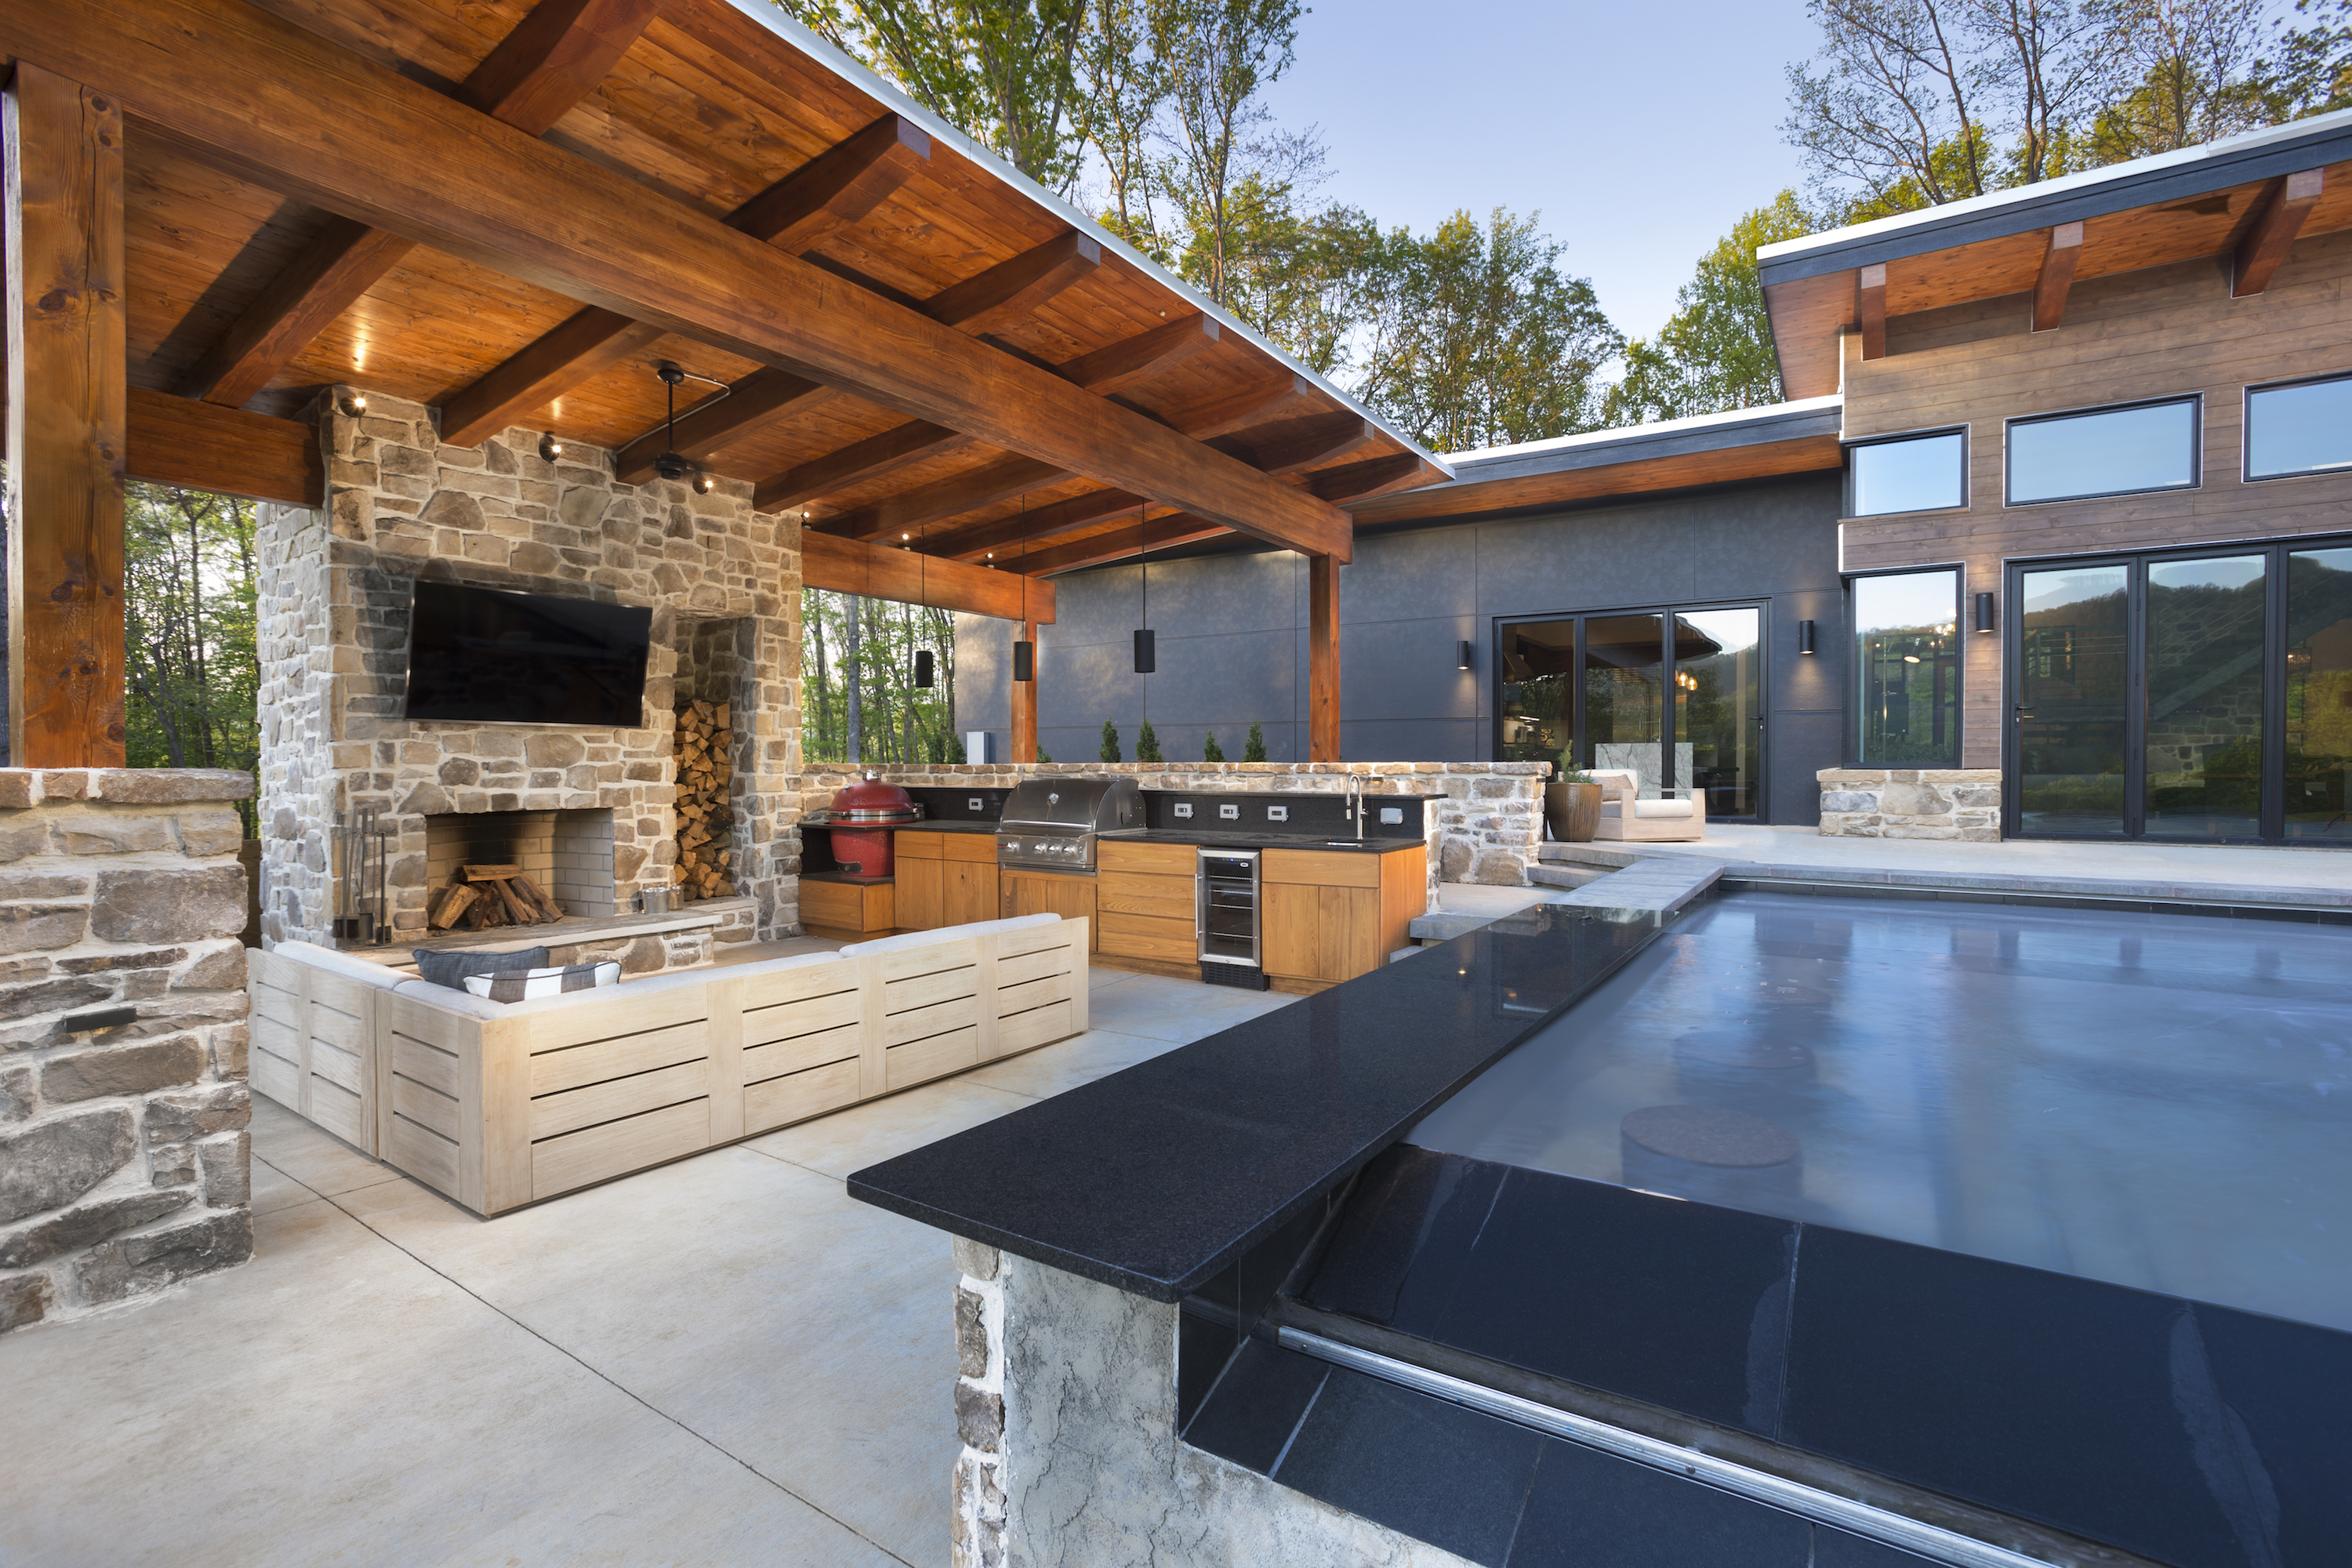 Living Stone Outdoor Living